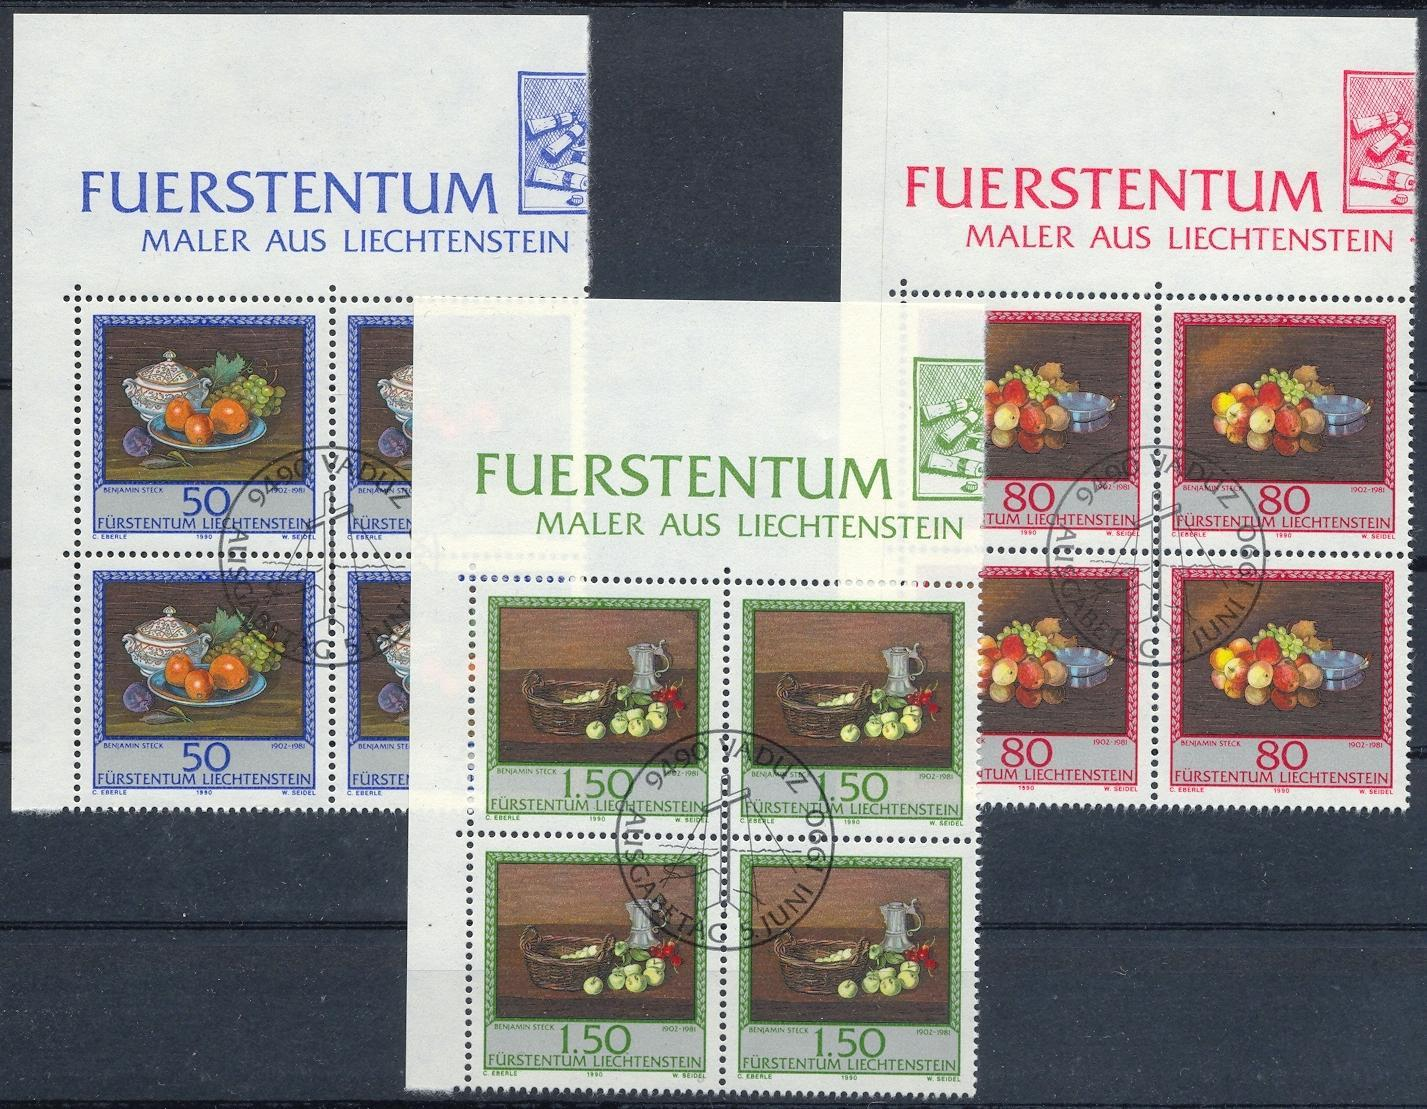 Stamps with Fruits, Art from Liechtenstein (image for product #032142)